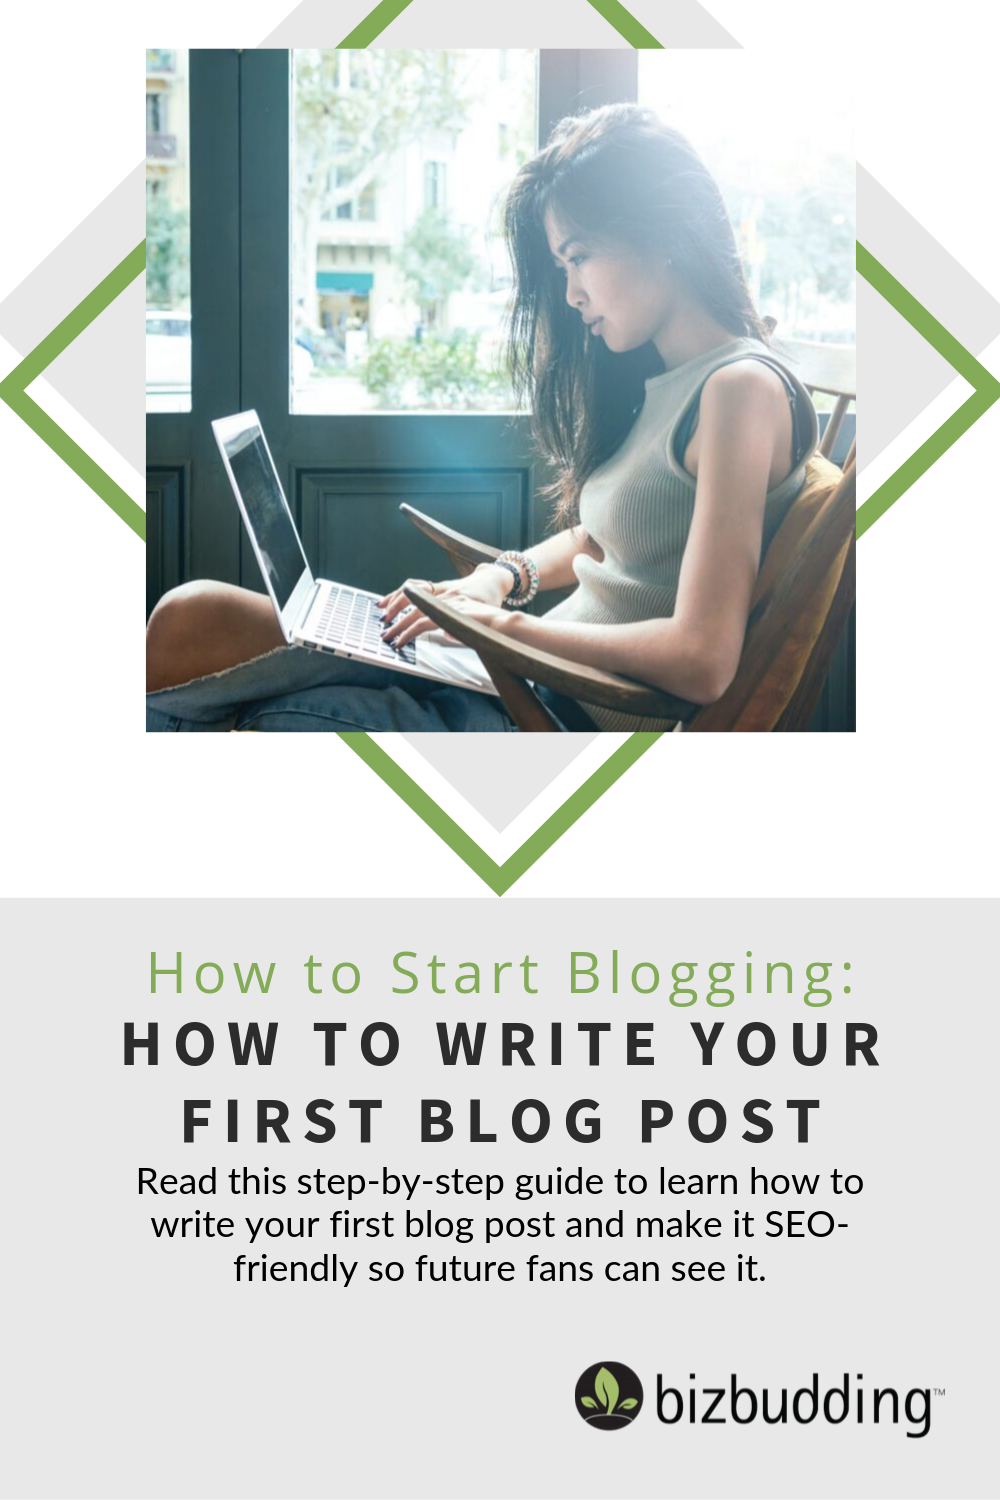 How to Write Your First Blog Post Pinterest Pin Image